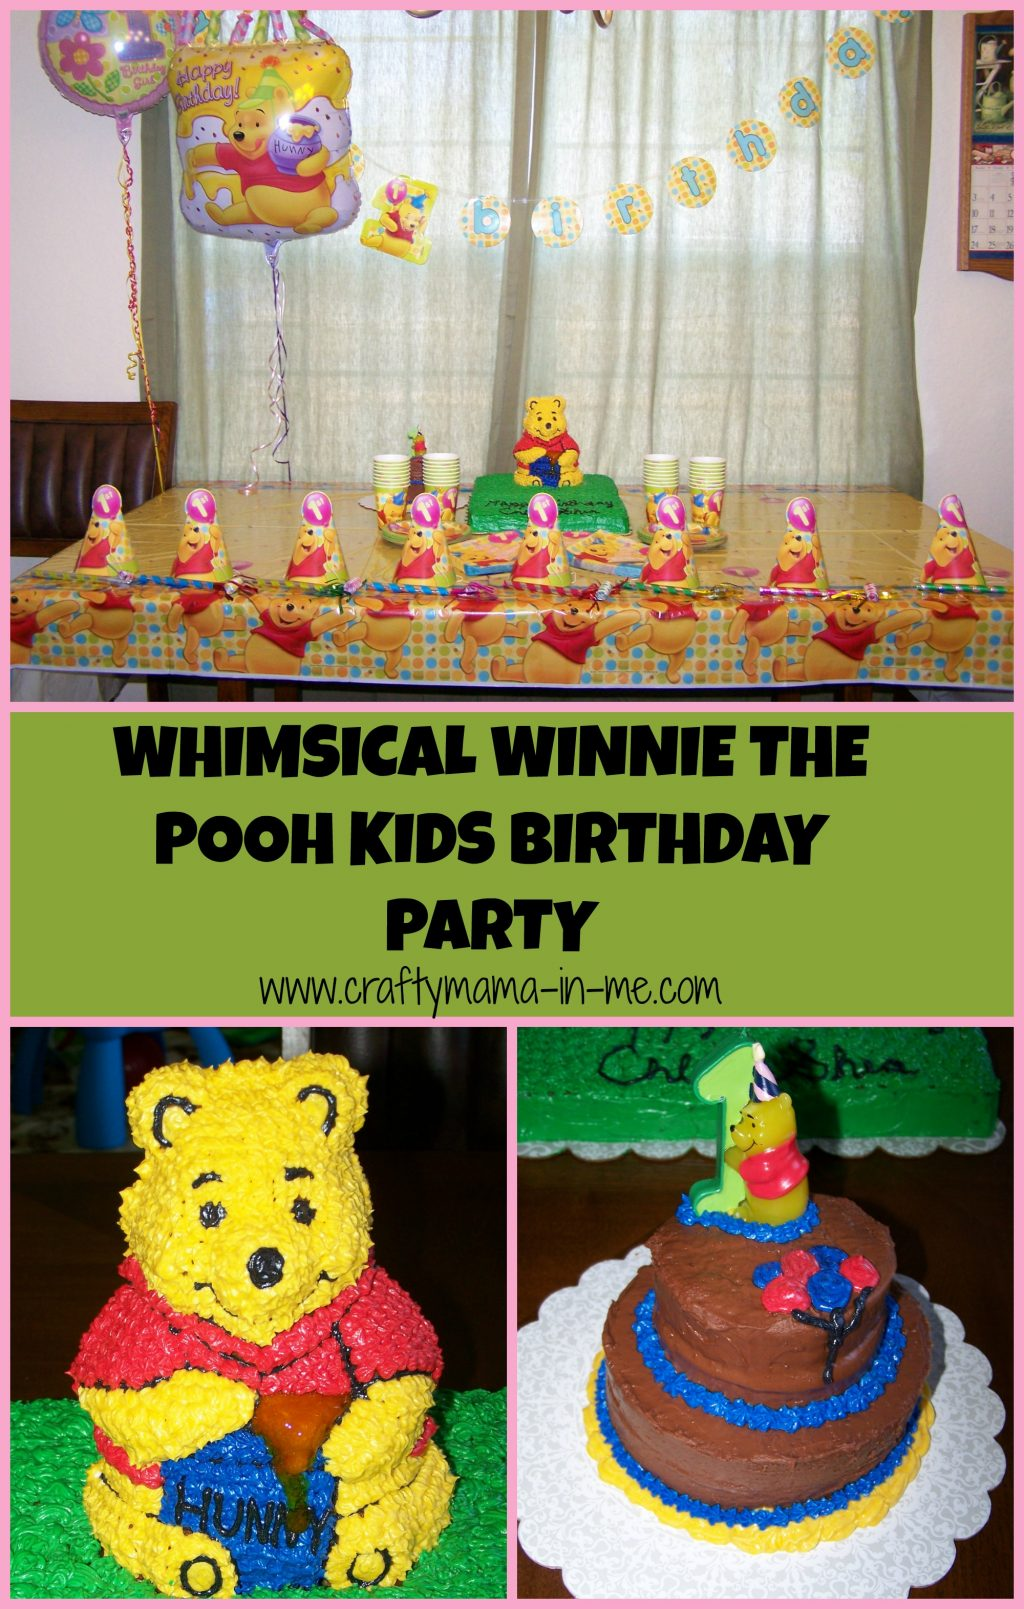 Whimsical Winnie The Pooh Kids Birthday Party Crafty Mama In Me